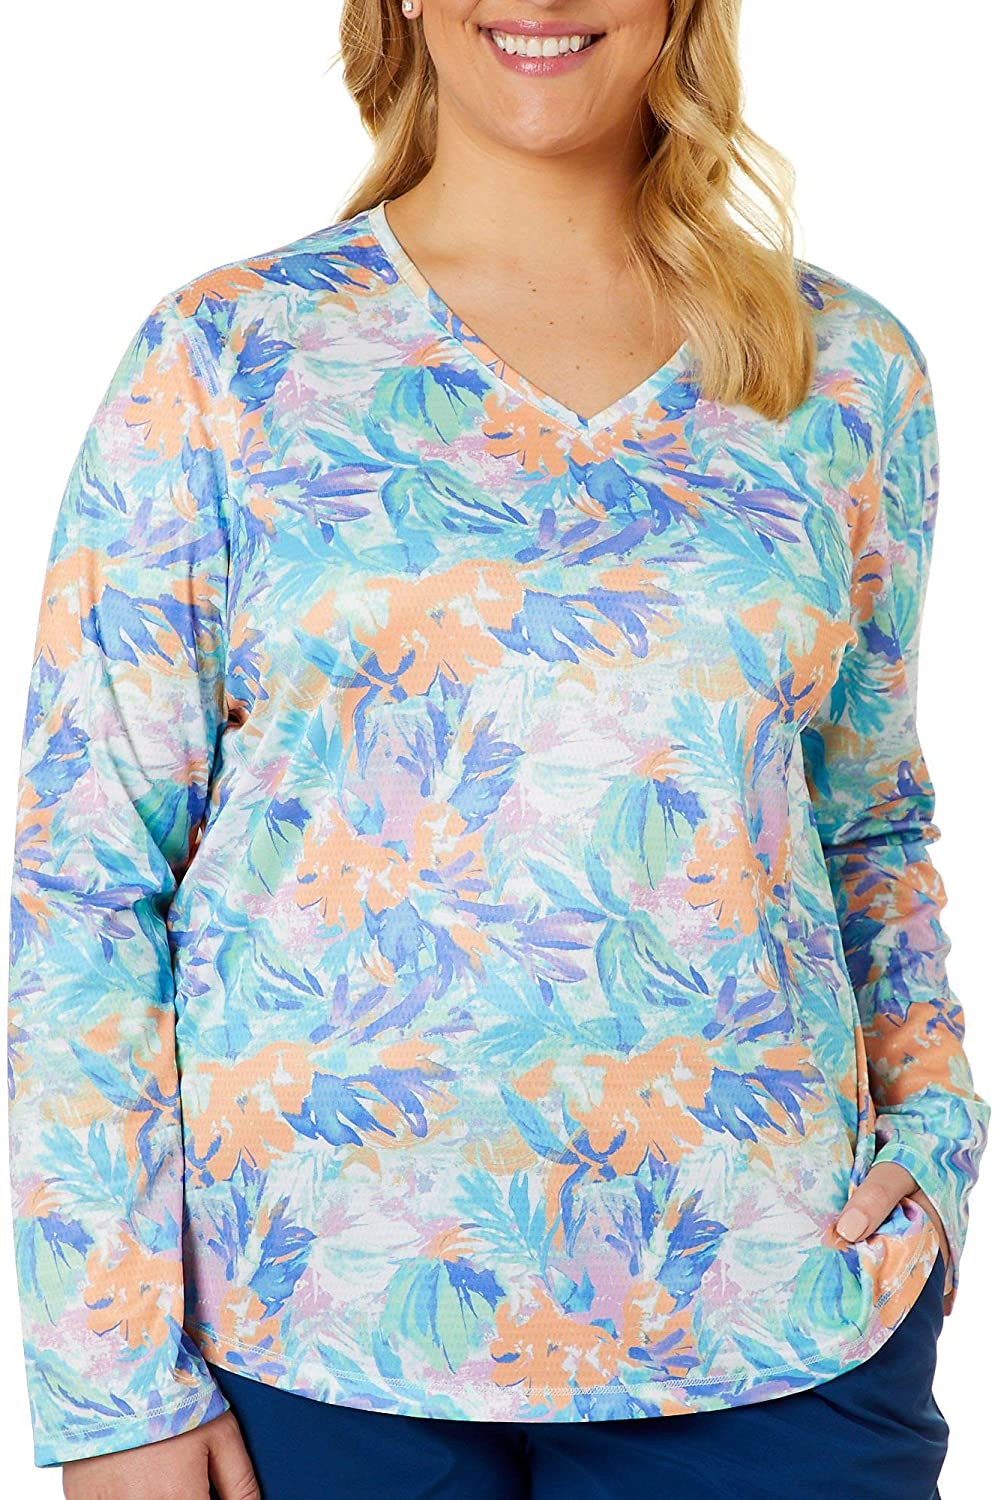 Reel Legends Plus Freeline Moving Floral Shimmer Top 2X Multi